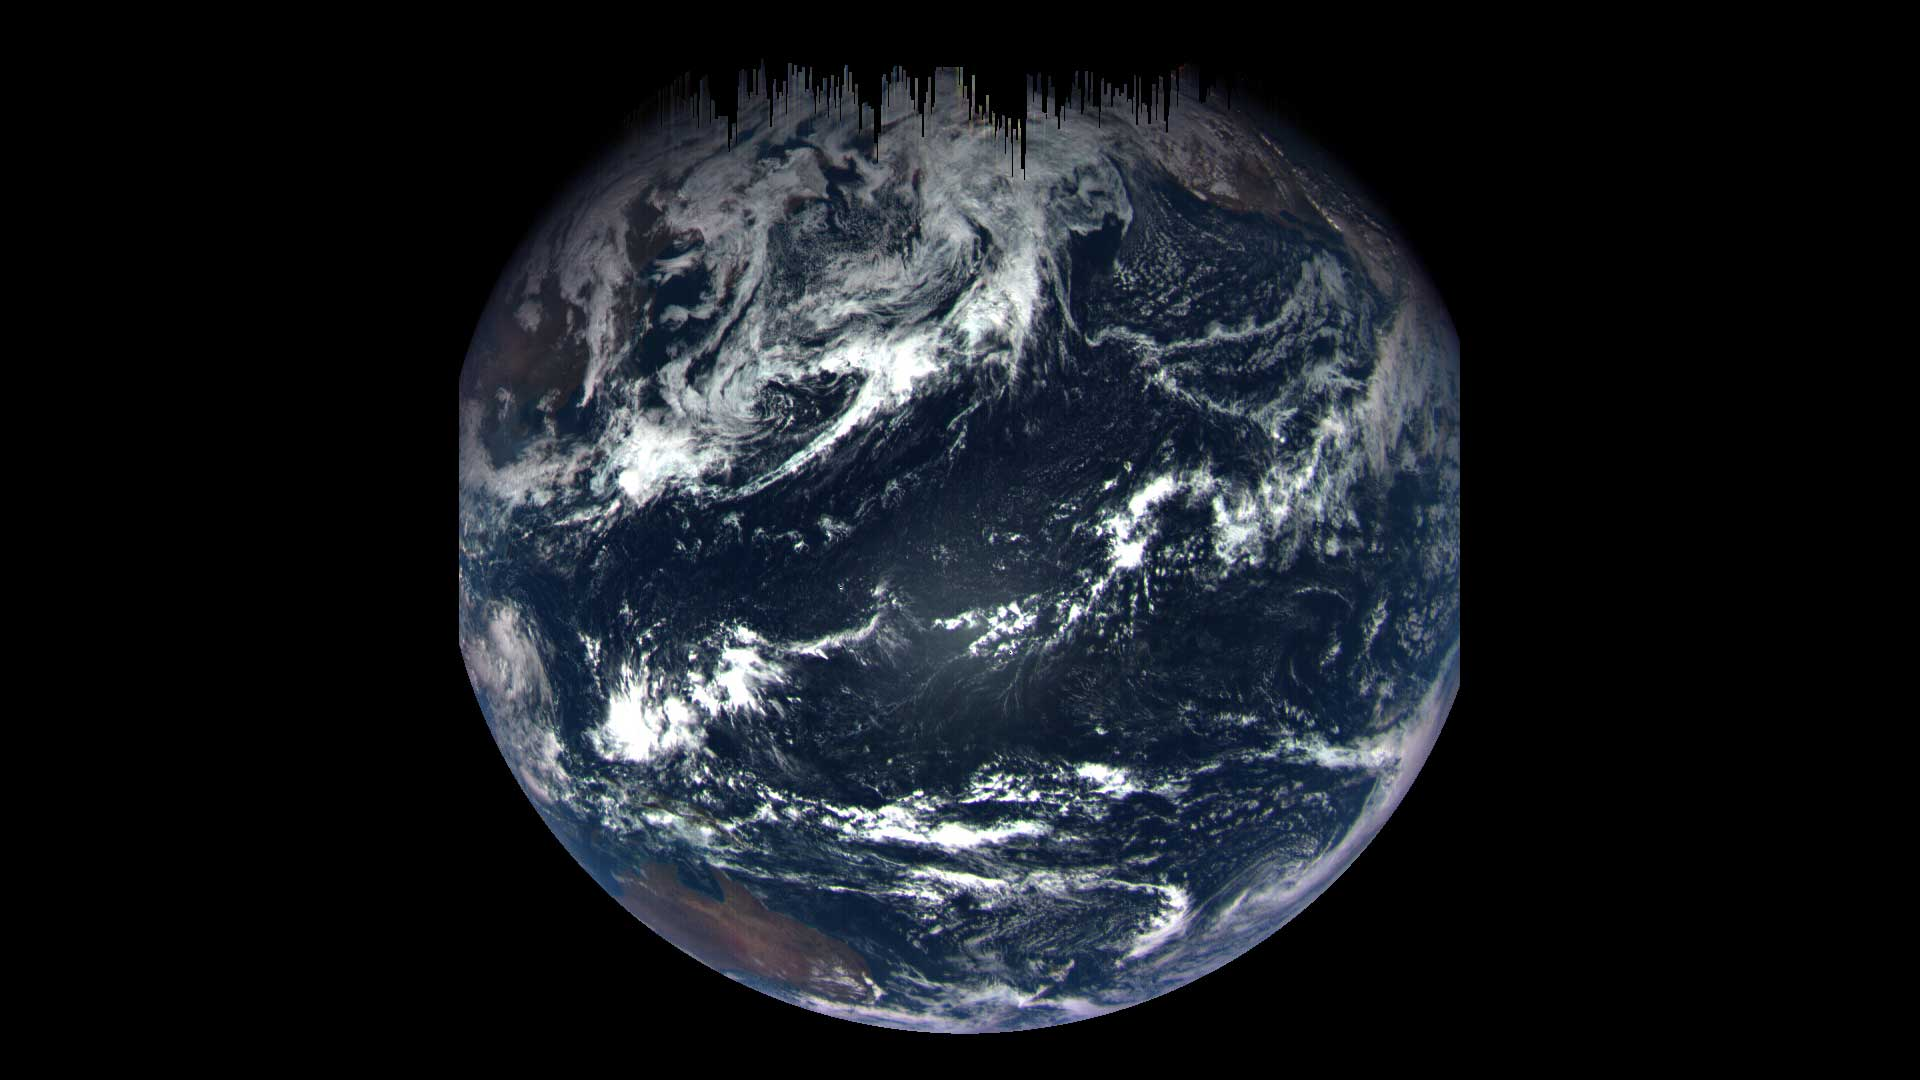 A color composite image of Earth taken on Sept. 22, 2017 by the MapCam camera on NASA's OSIRIS-REx spacecraft.